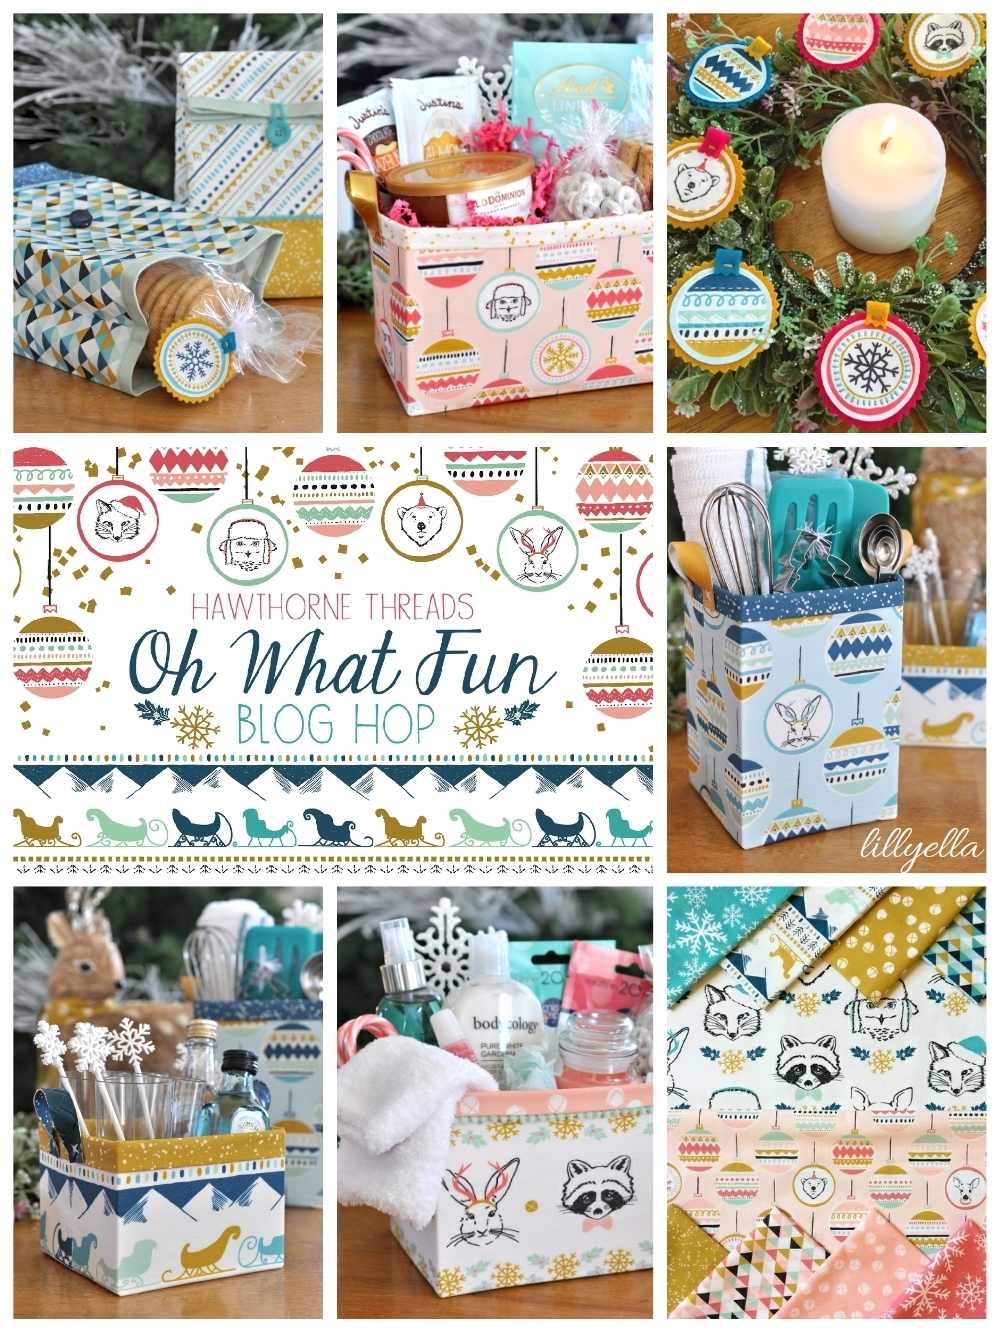 Oh What Fun Blog Hop Lillyella